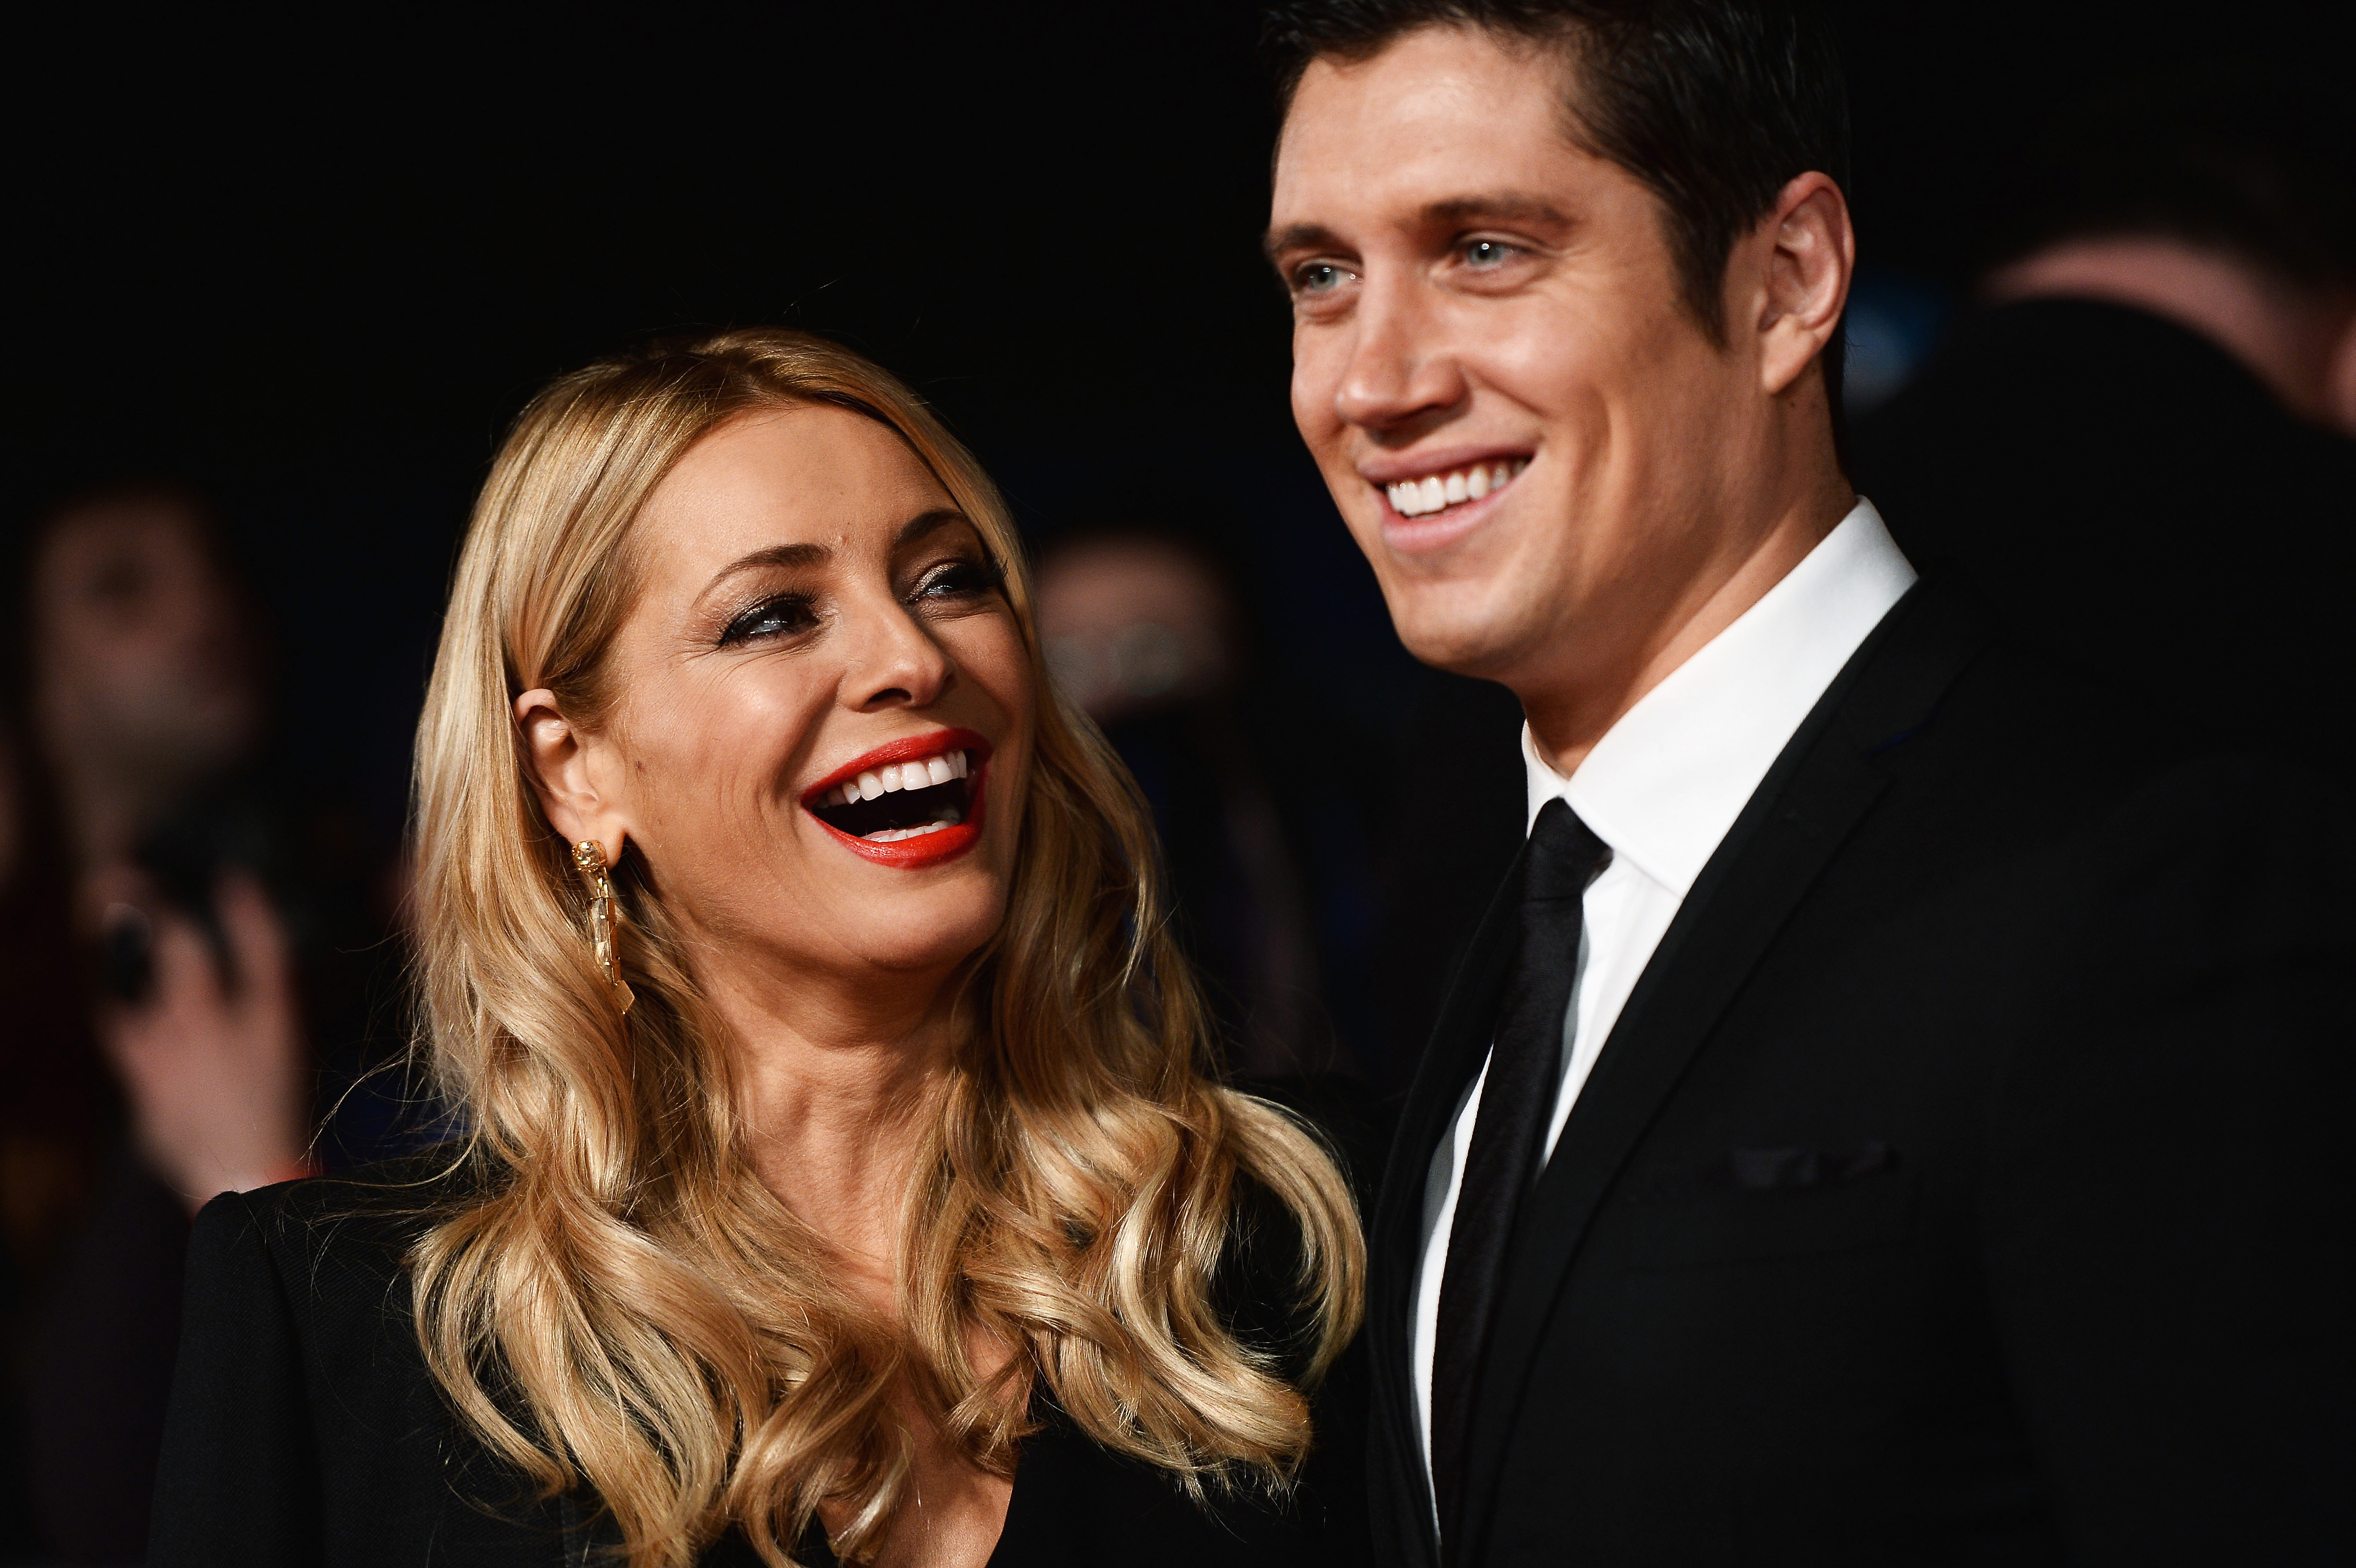 Tess Daly 'vows to stand by Vernon Kay': 'I won't let this woman ruin my marriage'